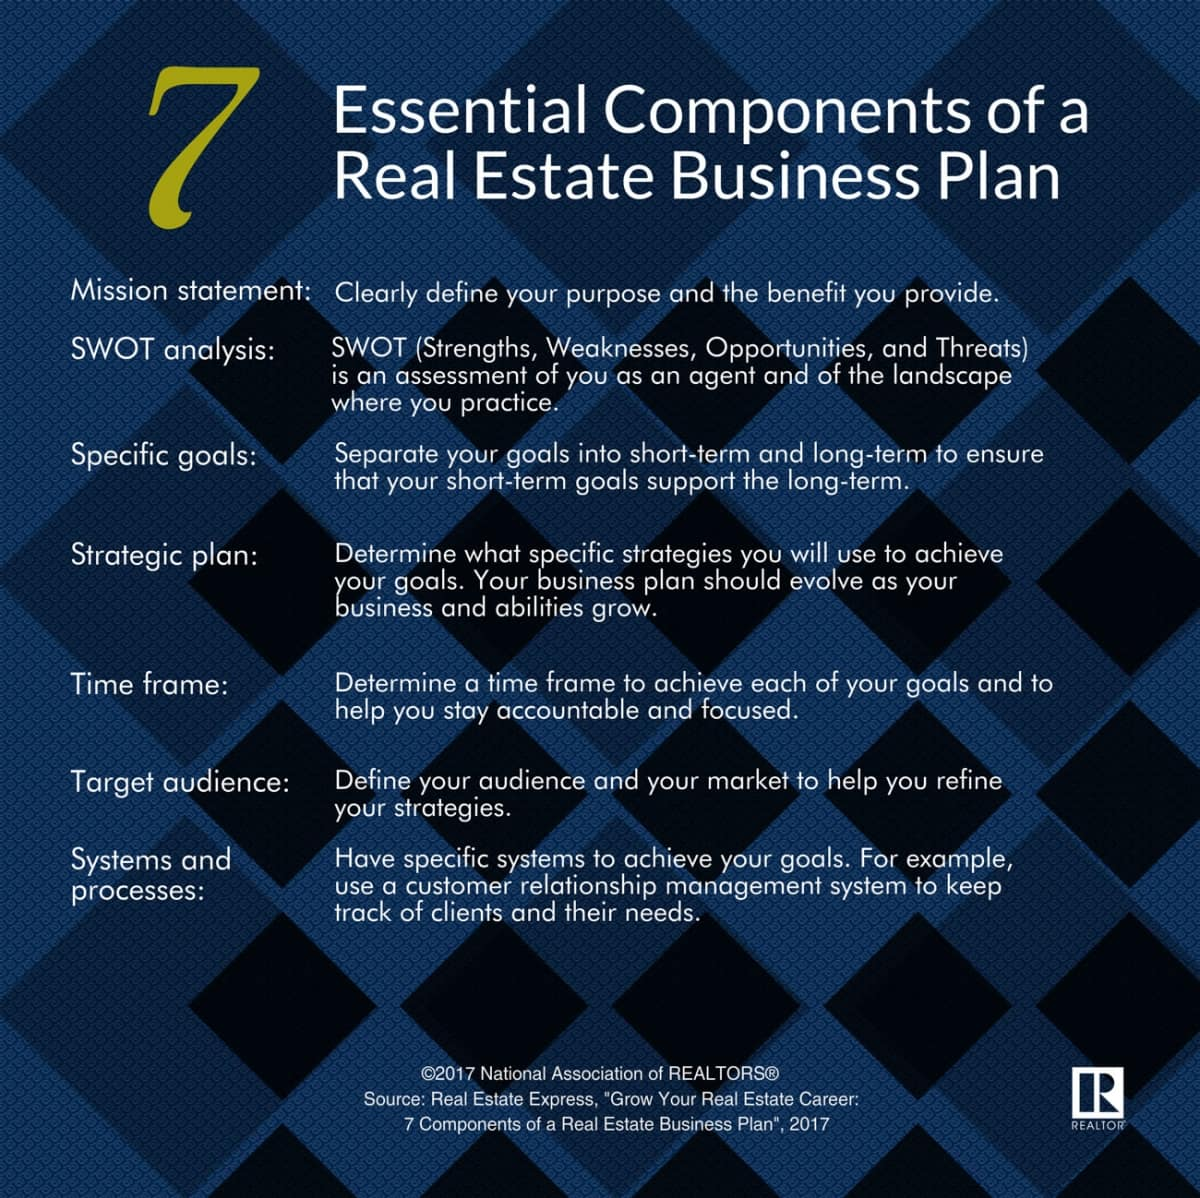 A Business Plan and You | The CE Shop